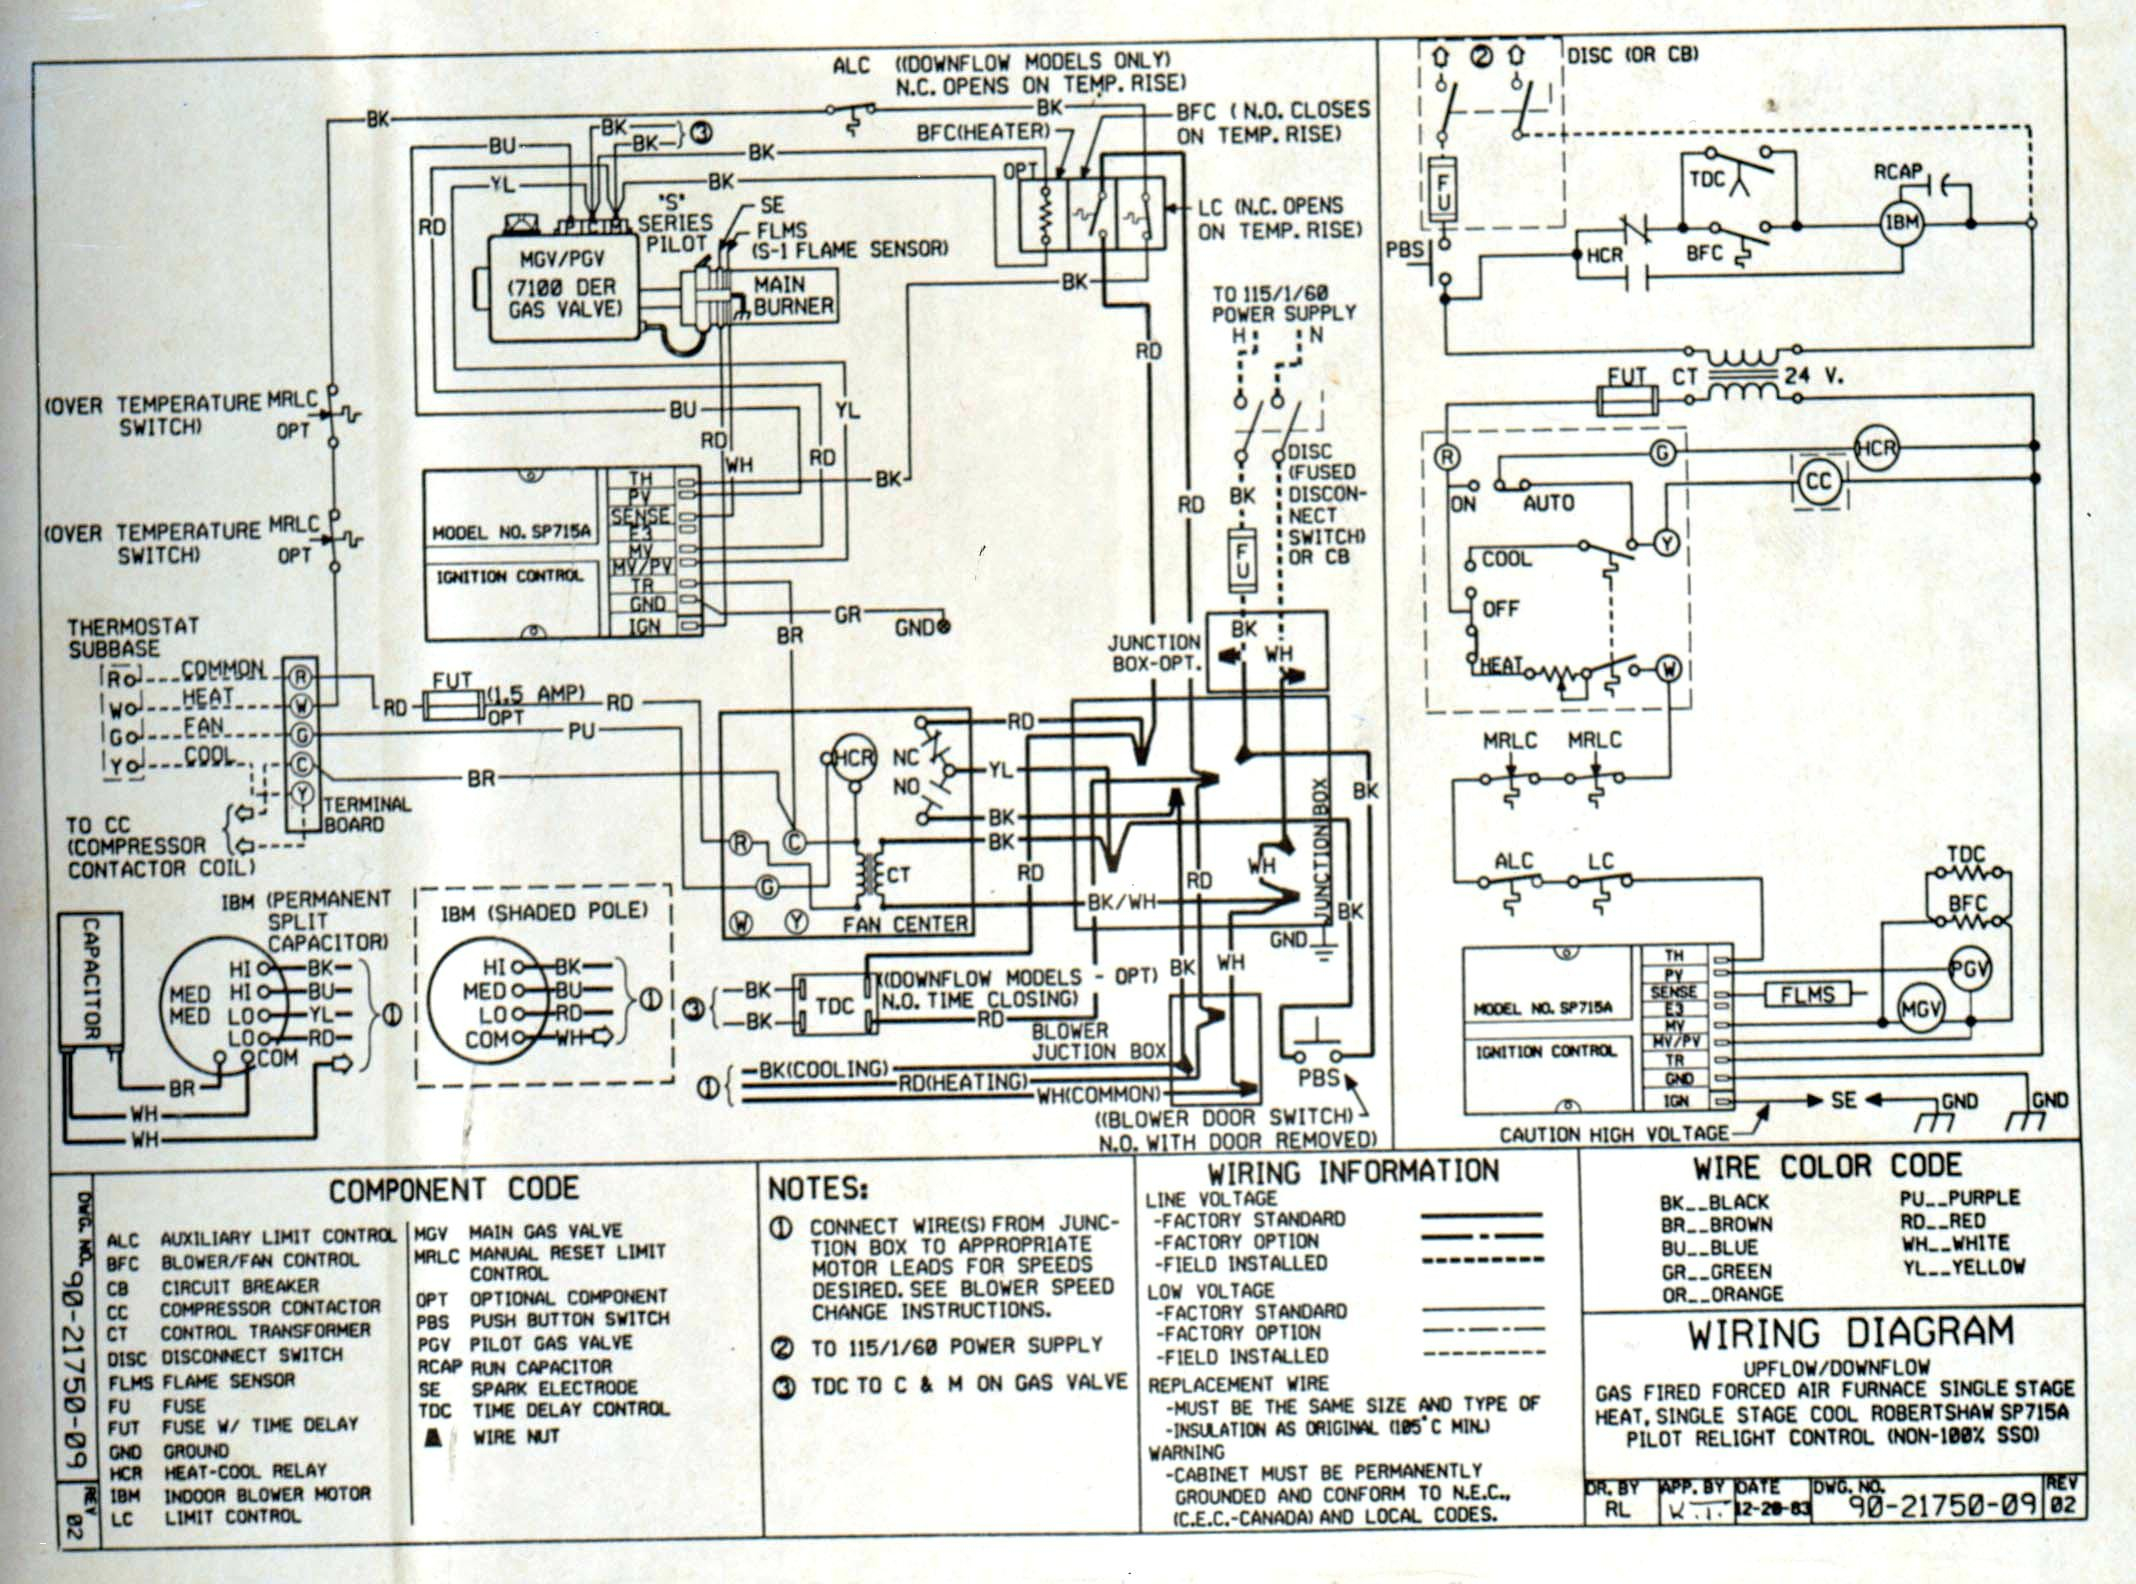 carrier ac unit wiring diagram Download-Goodman Air Handler Wiring Diagram  Unique Wiring Diagram Goodman